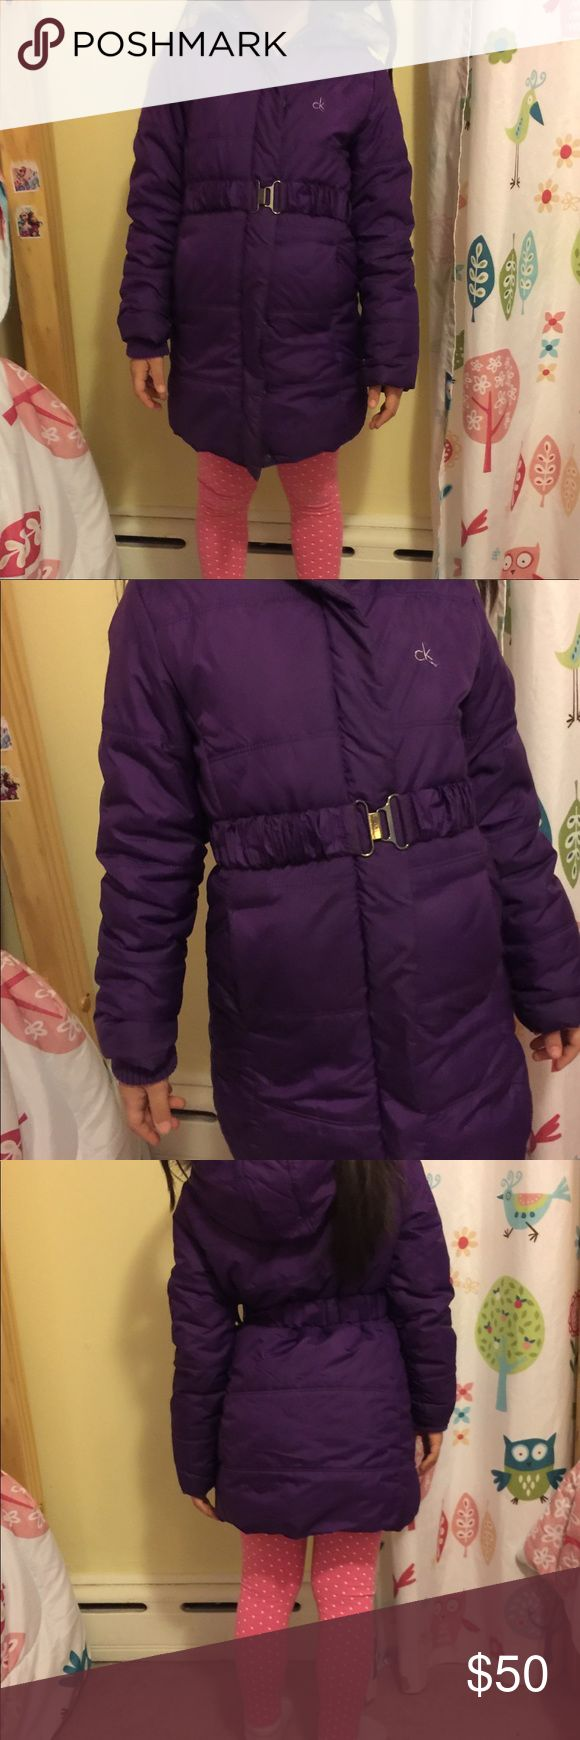 Calvin Klein coat Purple coat was purchased at Burlington coat factory with a stain on the back of the coat. My daughter barely used it. It's in almost new condition. You cannot see the stain when worn. Look at the last pictures please. Size 6-7 Calvin Klein Jackets & Coats Puffers